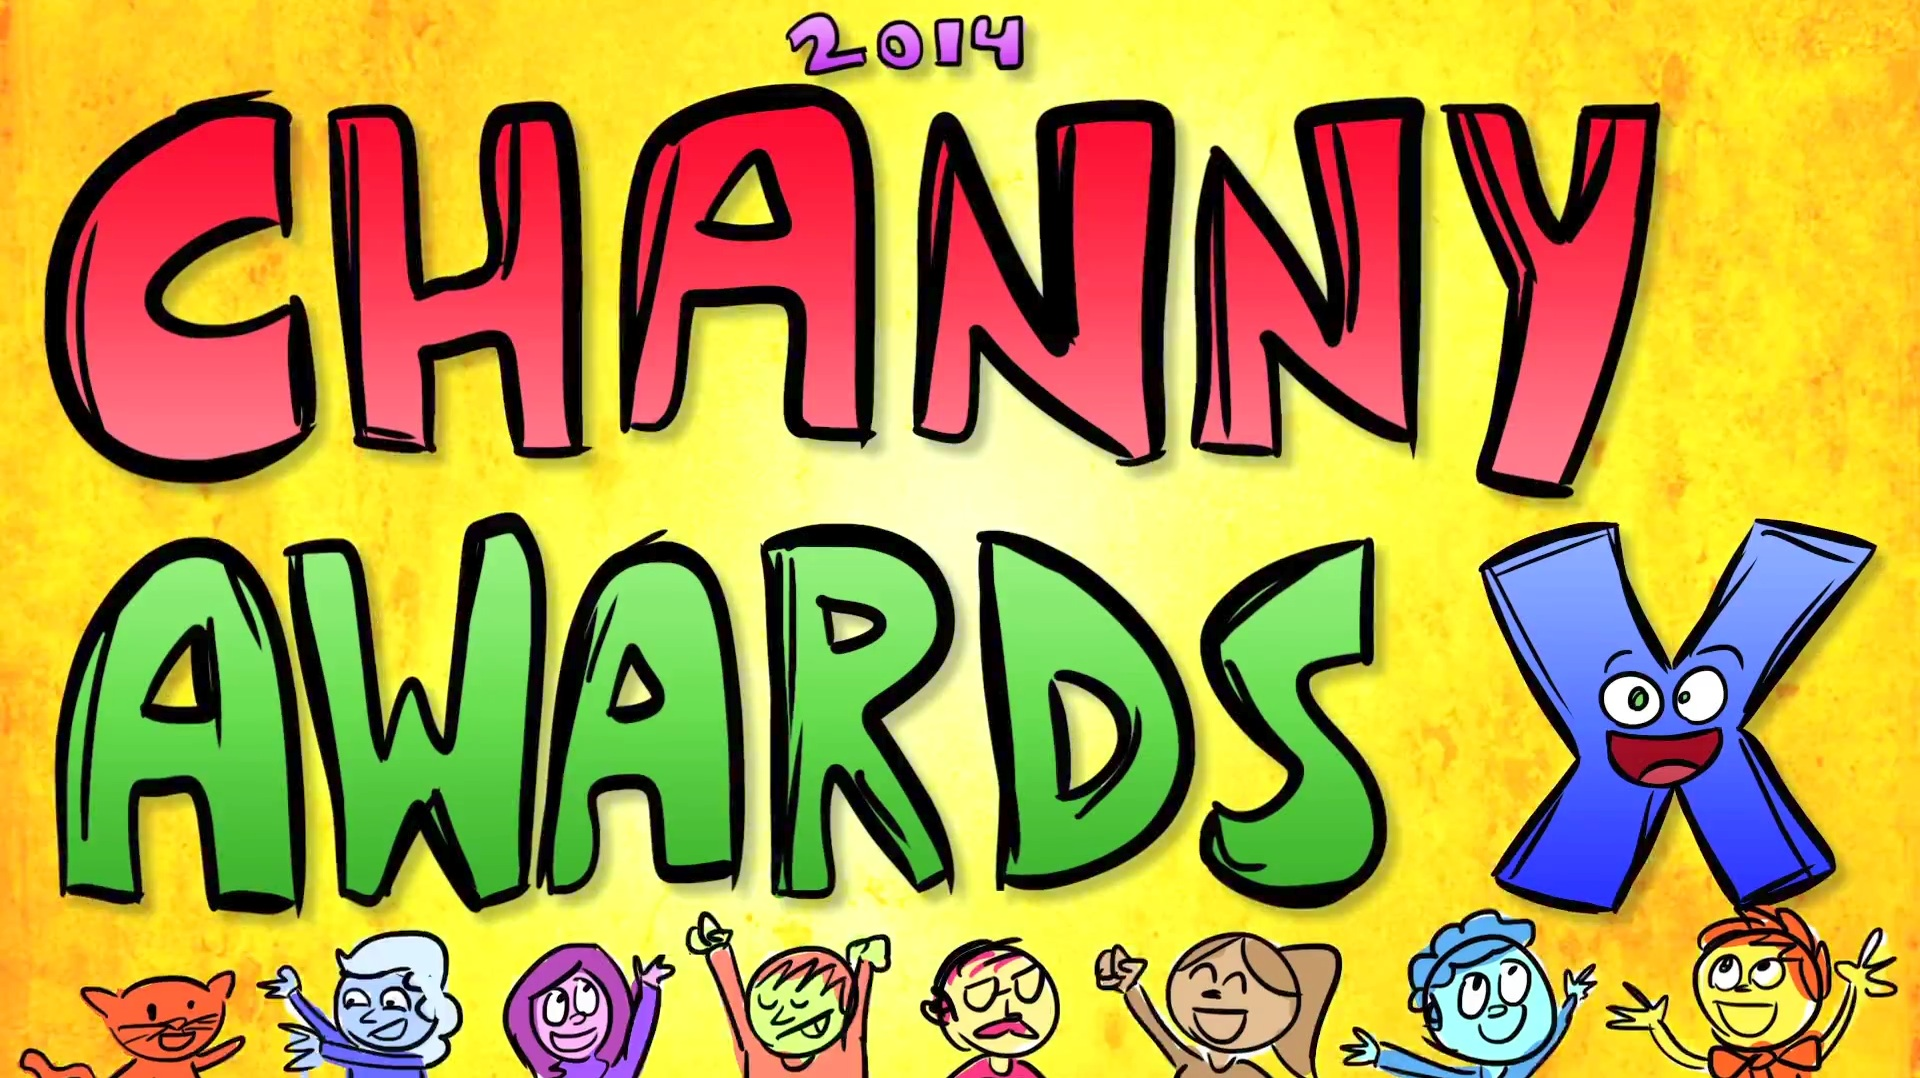 The 2014 Channy Awards